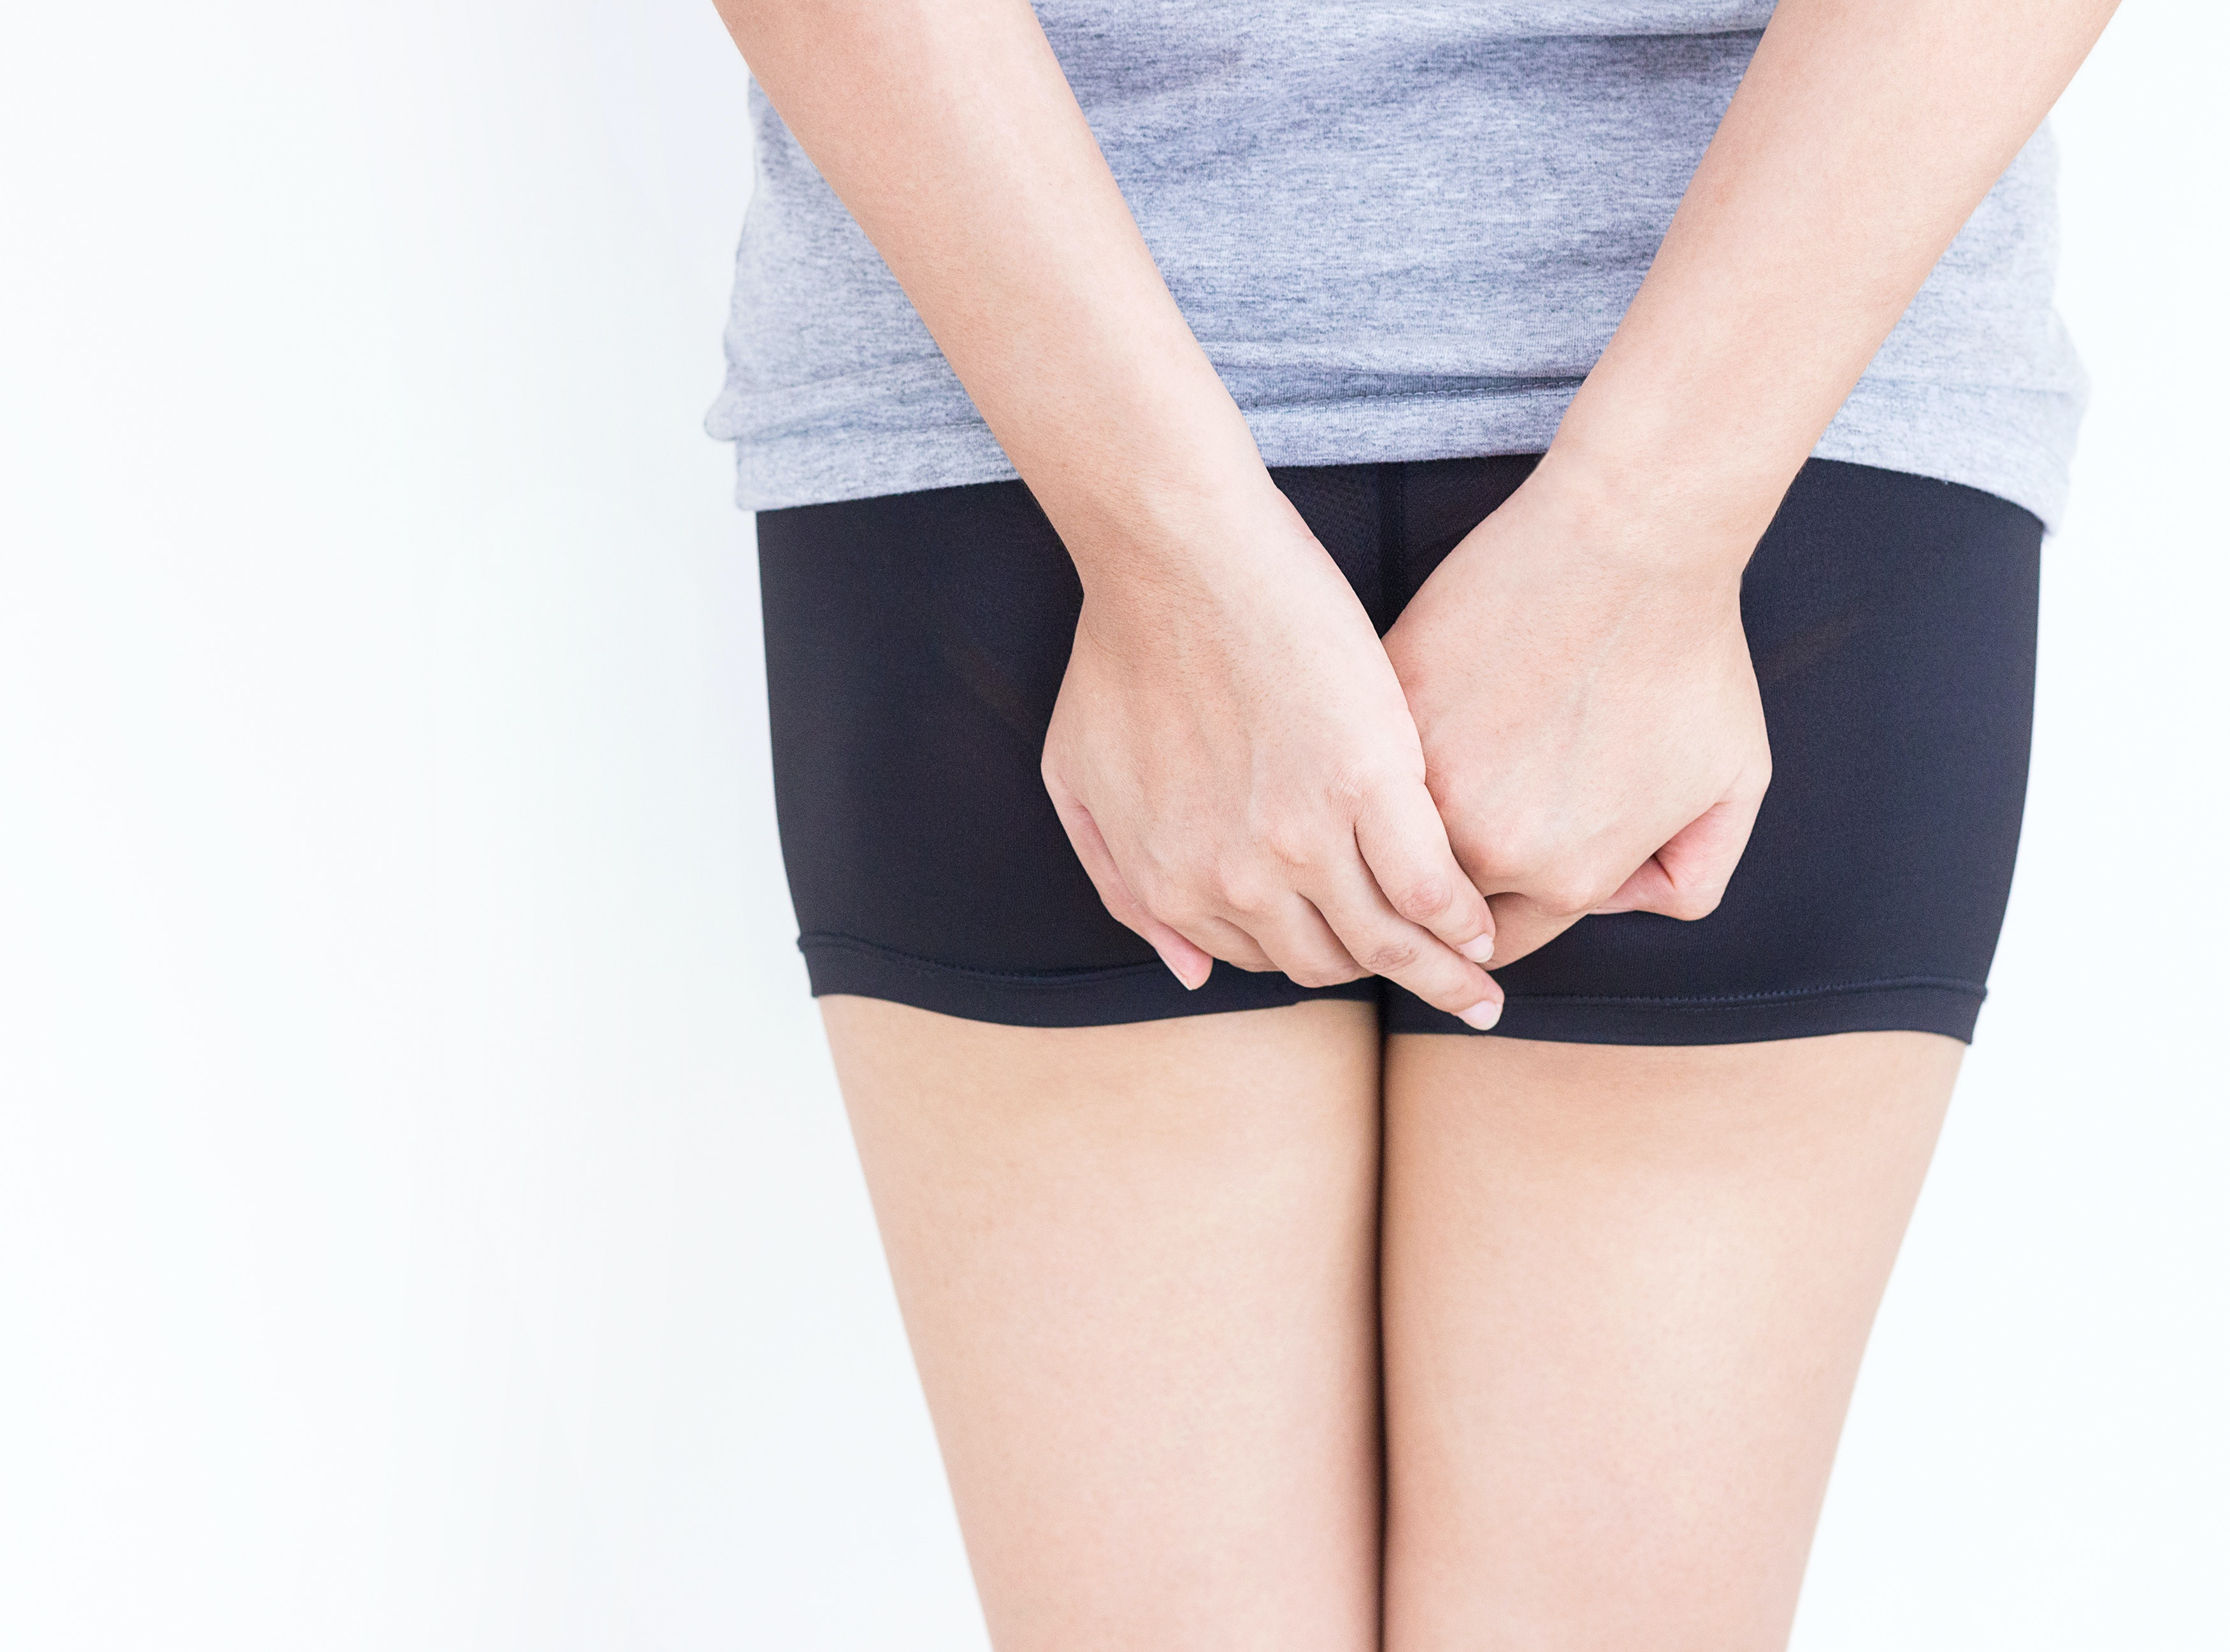 An image depicting a person suffering from butt bump symptoms